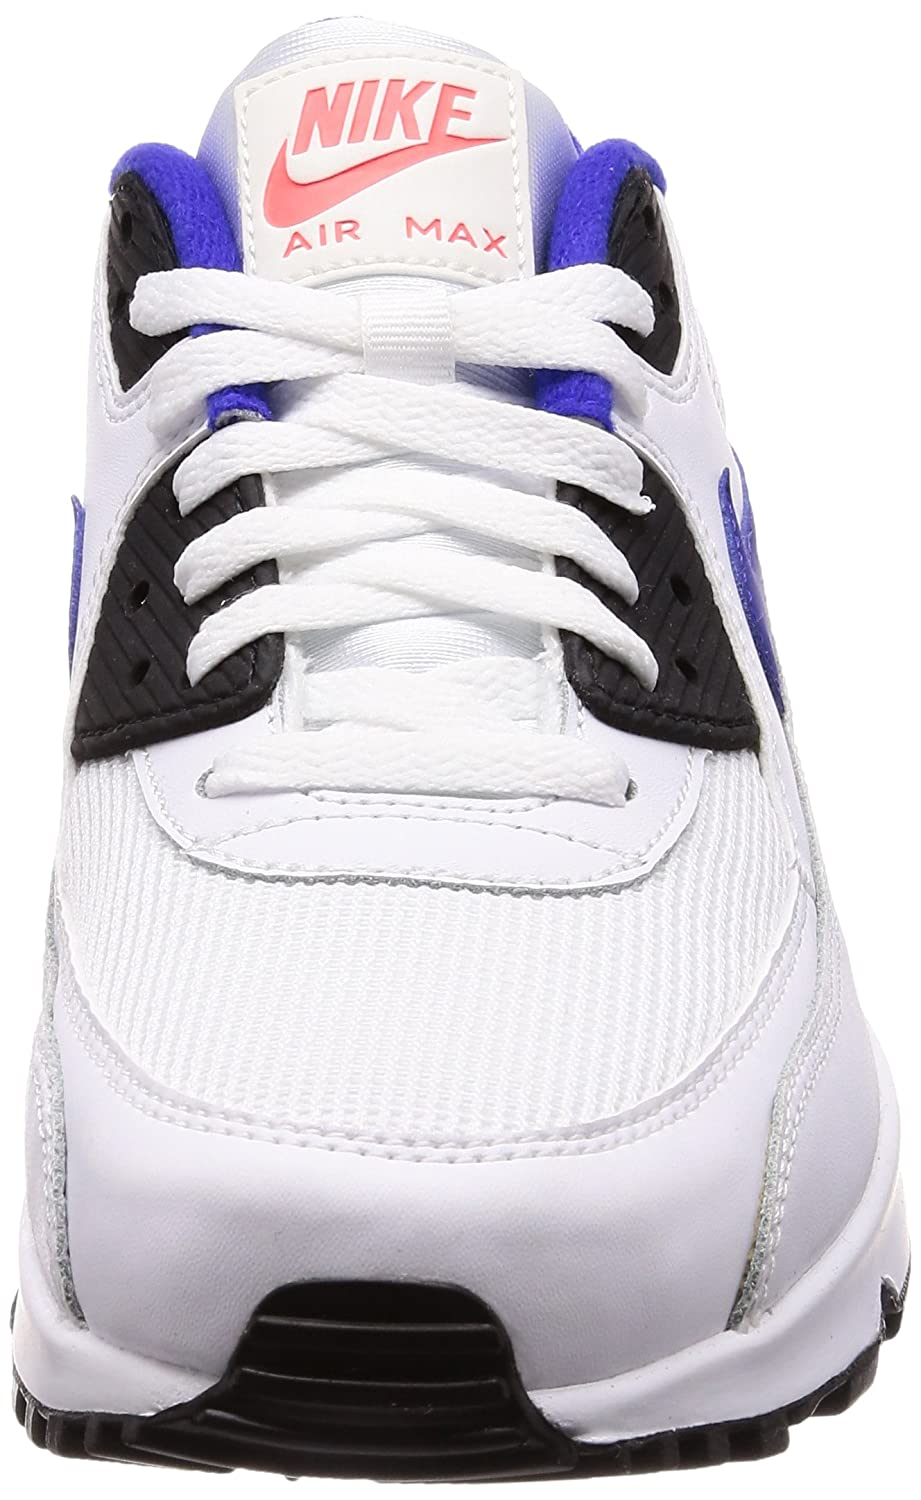 on sale 8988e ce4d9 Nike Men s Air Max 90 Essential Low-Top Sneakers  Amazon.co.uk  Shoes   Bags